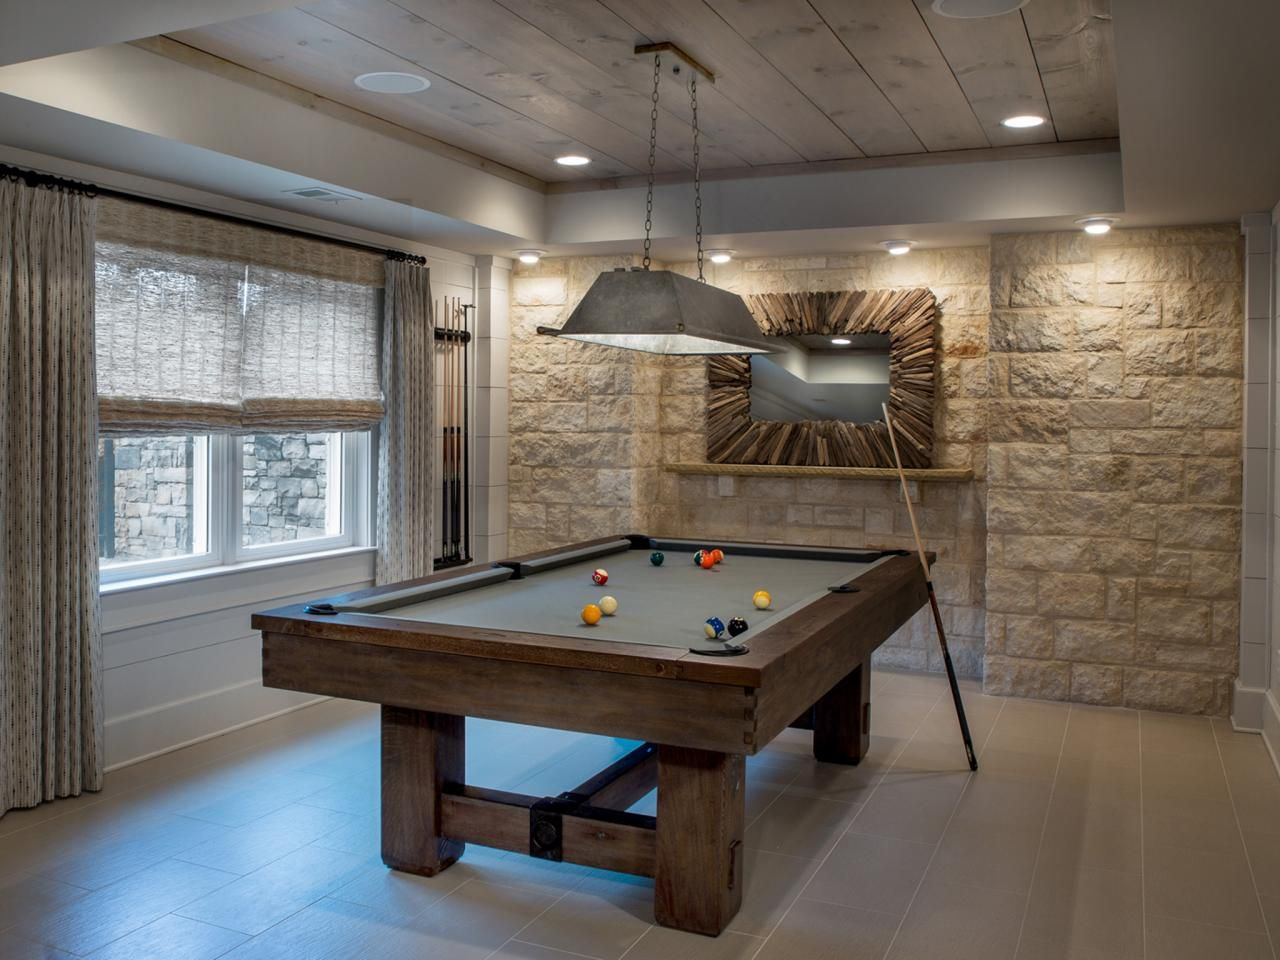 Best Game Room Design Game Room Ideas Gallery Decorating 400 x 300